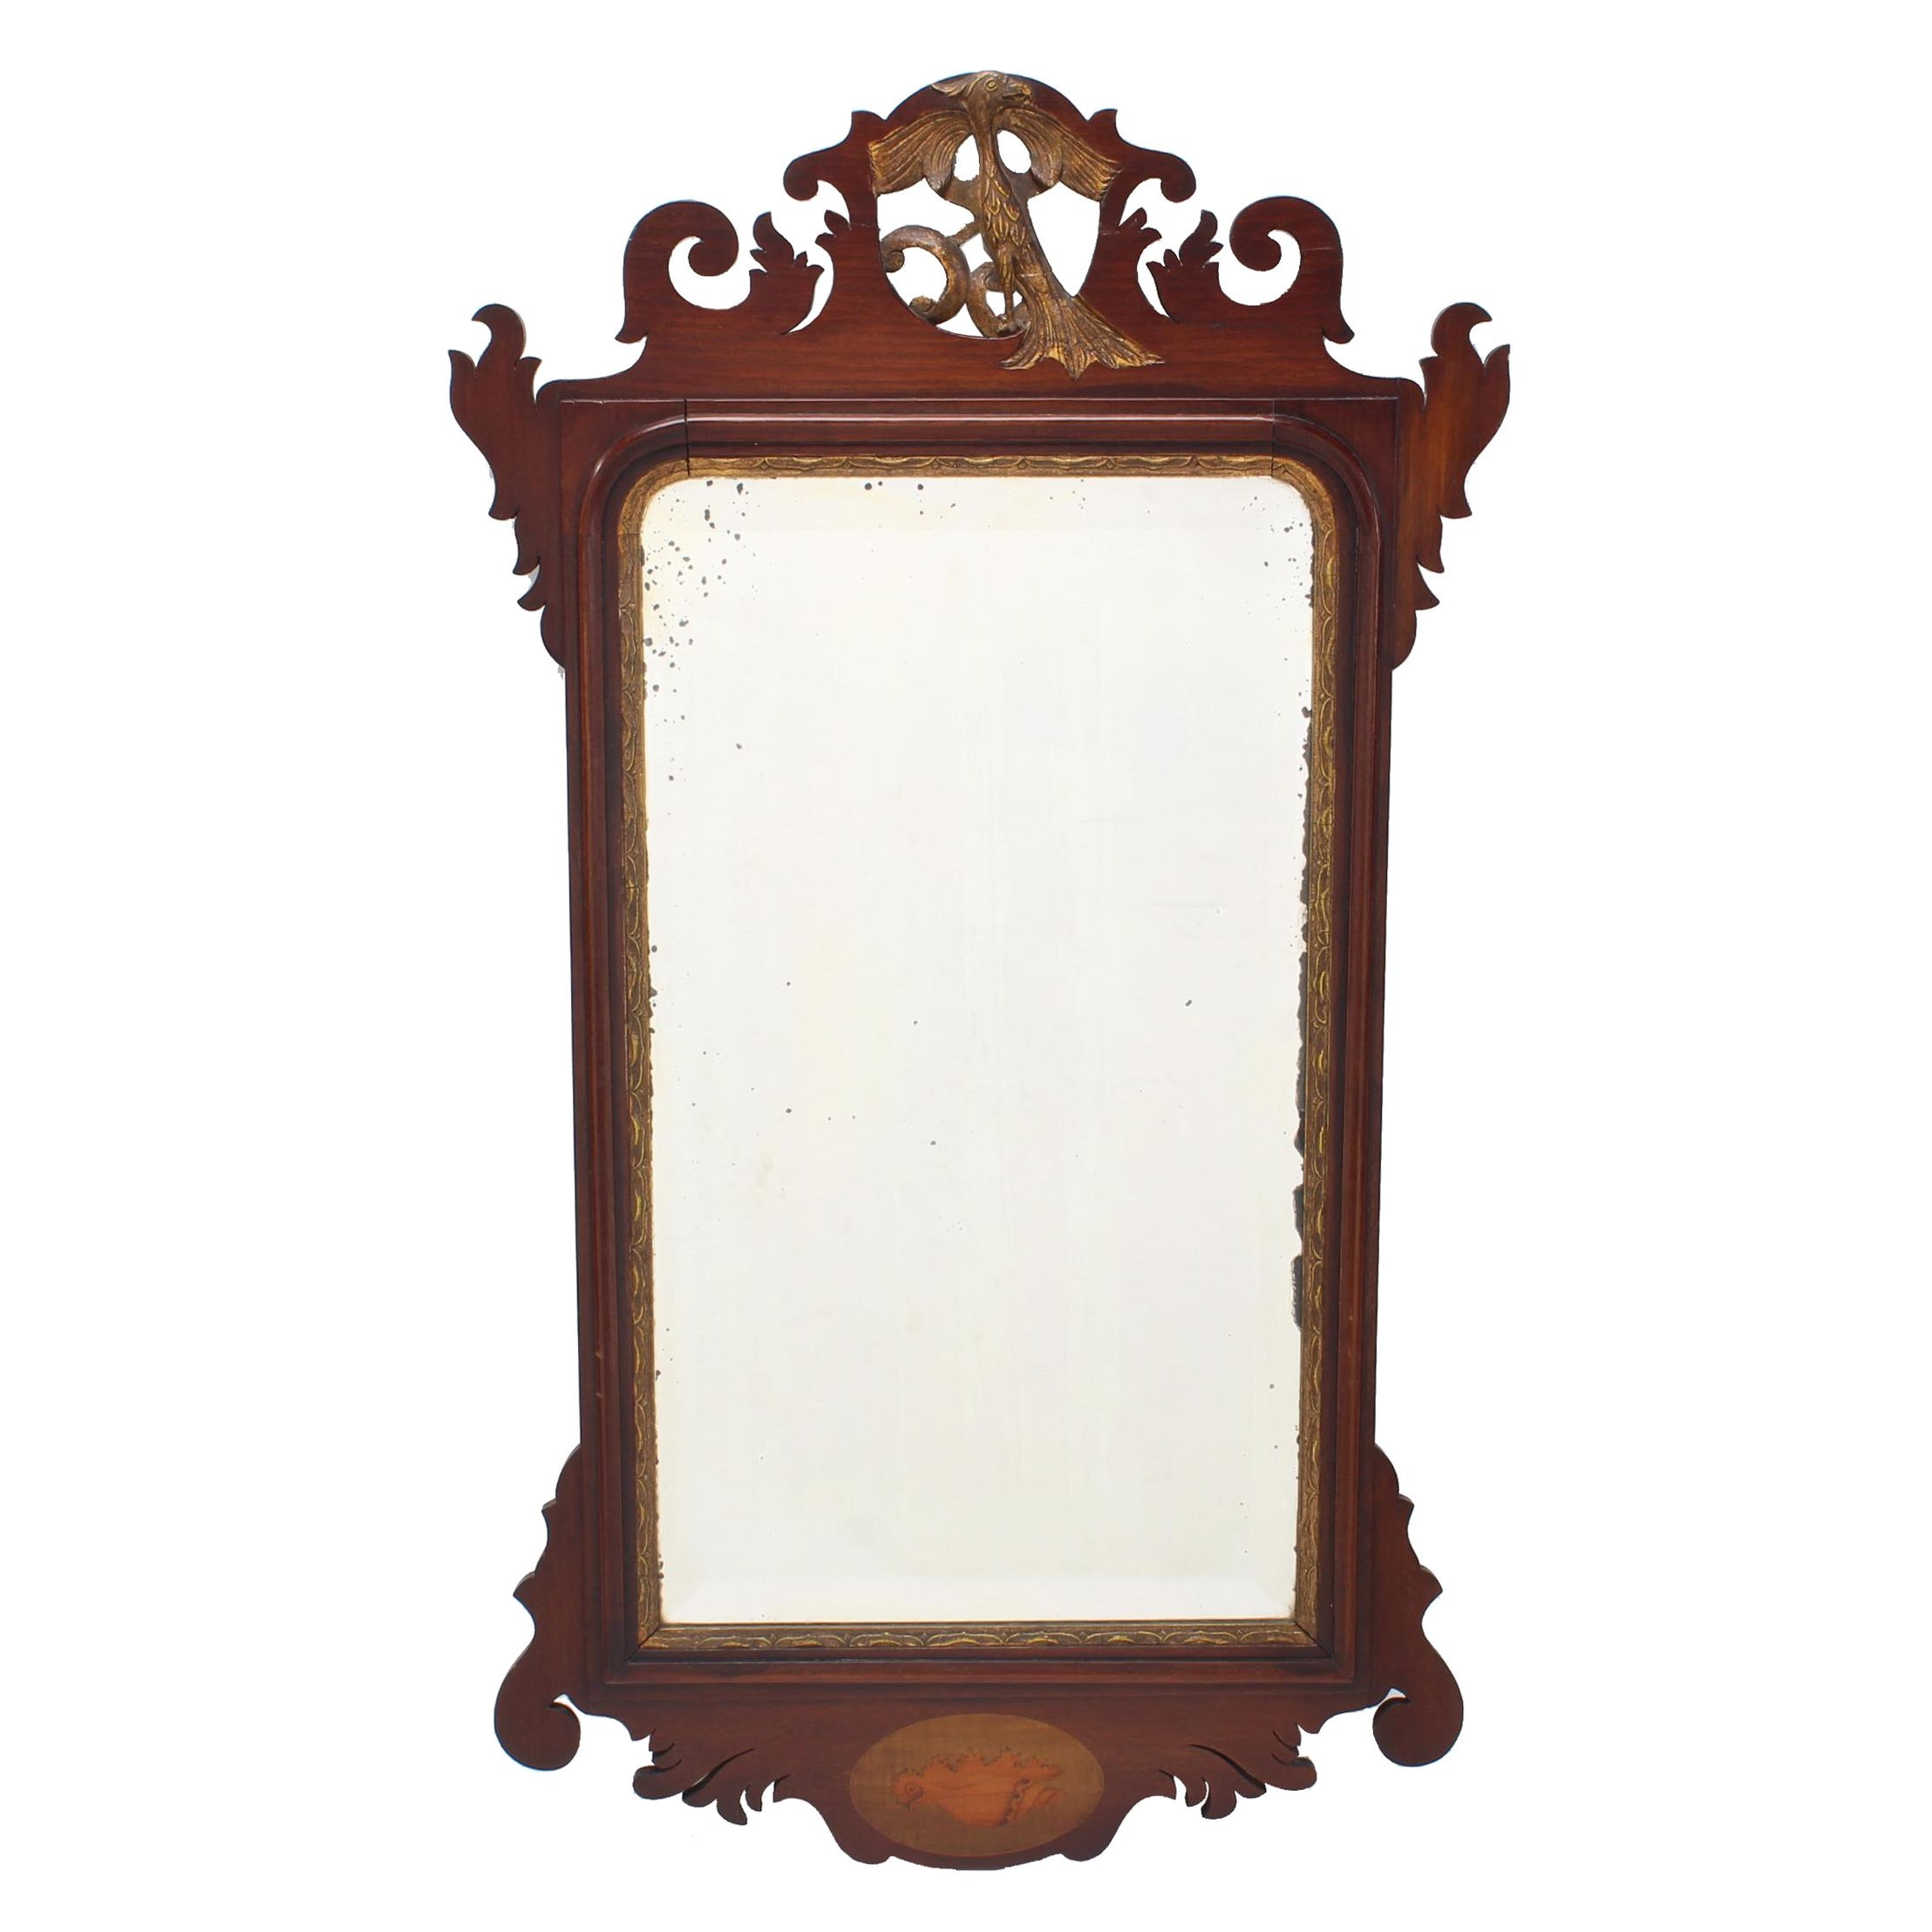 George III Style Mahogany, Parcel-Gilt, and Marquetry Mirror